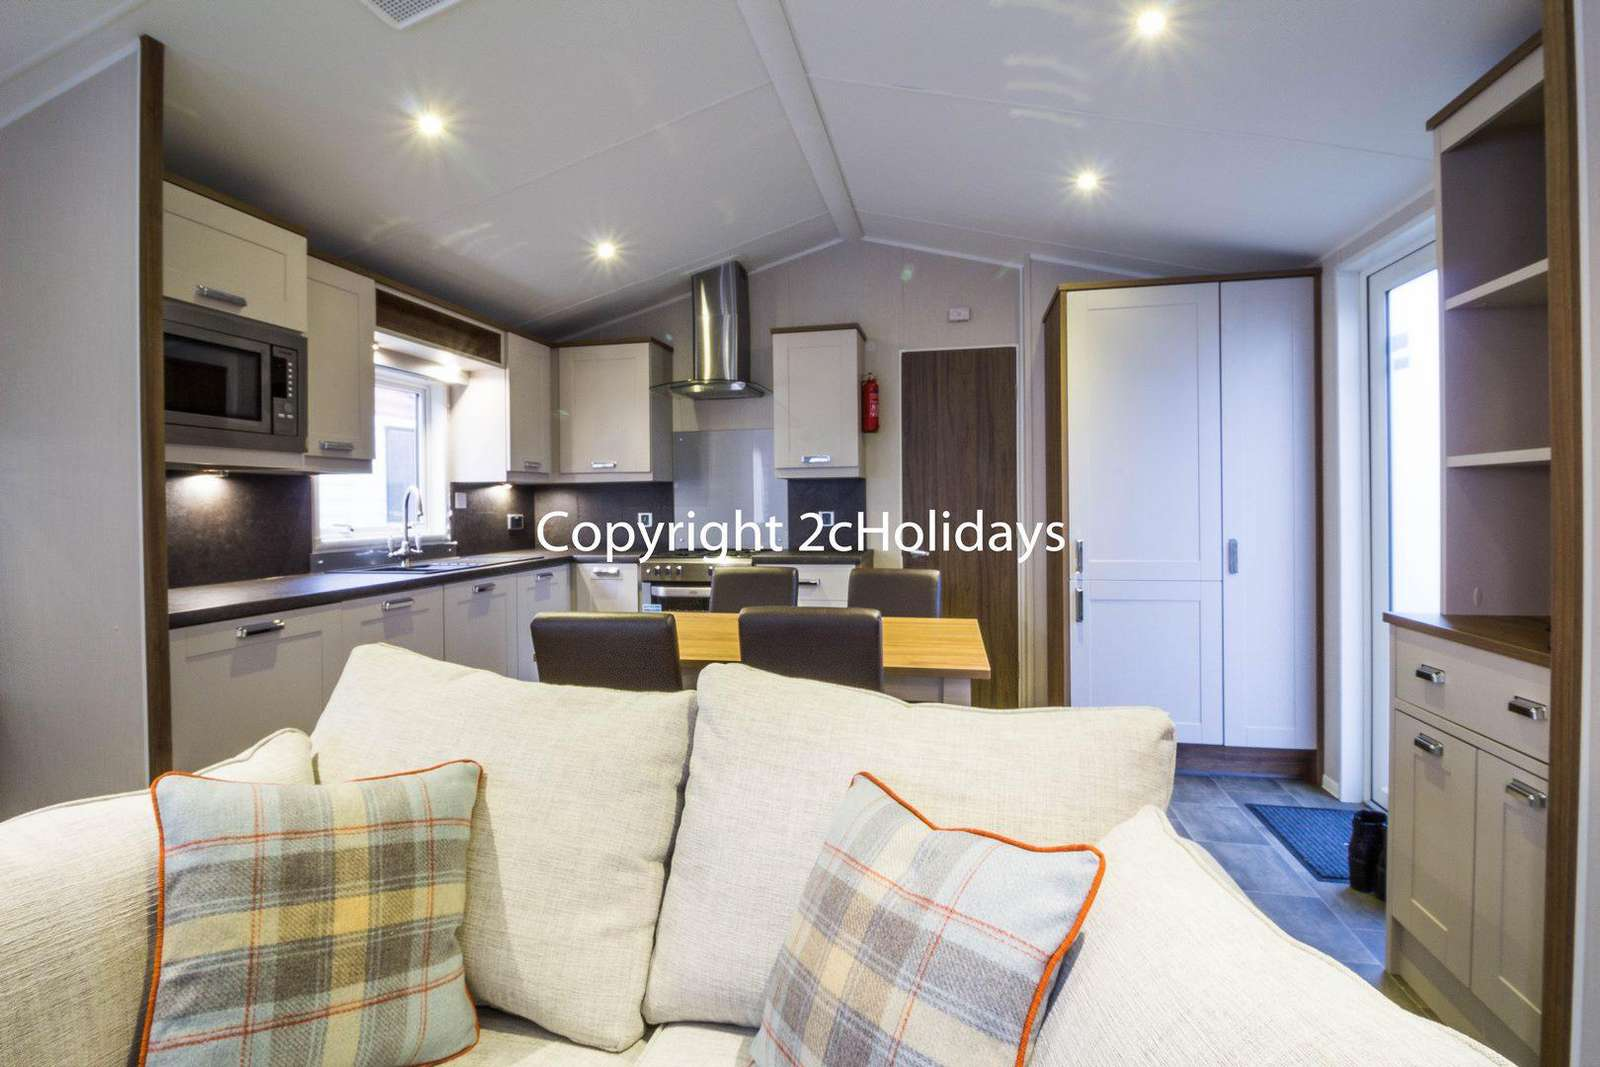 Caravan to hire near Sea Life Centre. Book your holiday at Manor Park Holiday Park.